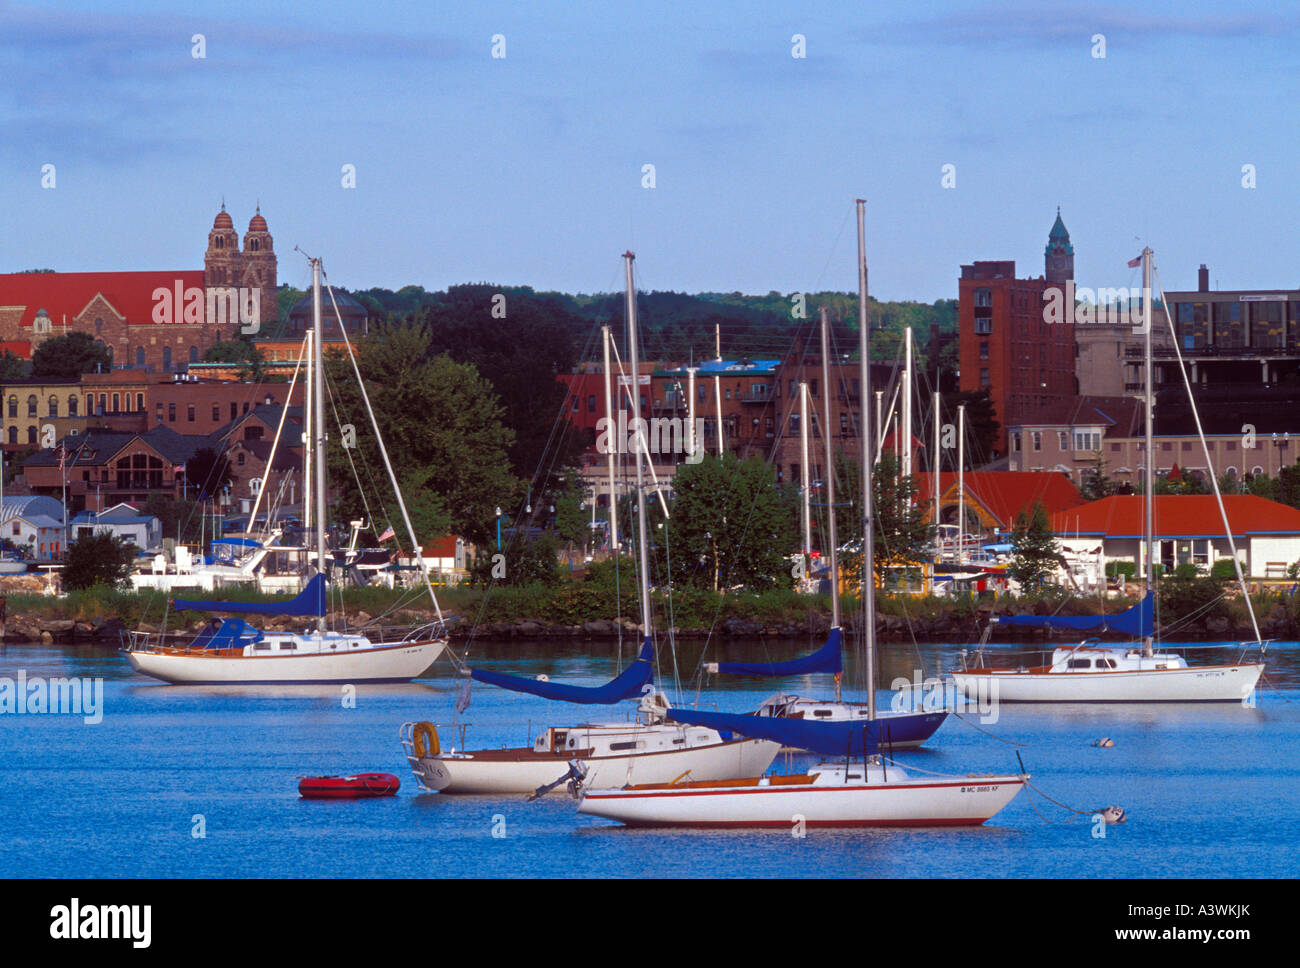 Sailboats anchor in the lower harbor of Marquette Mich - Stock Image